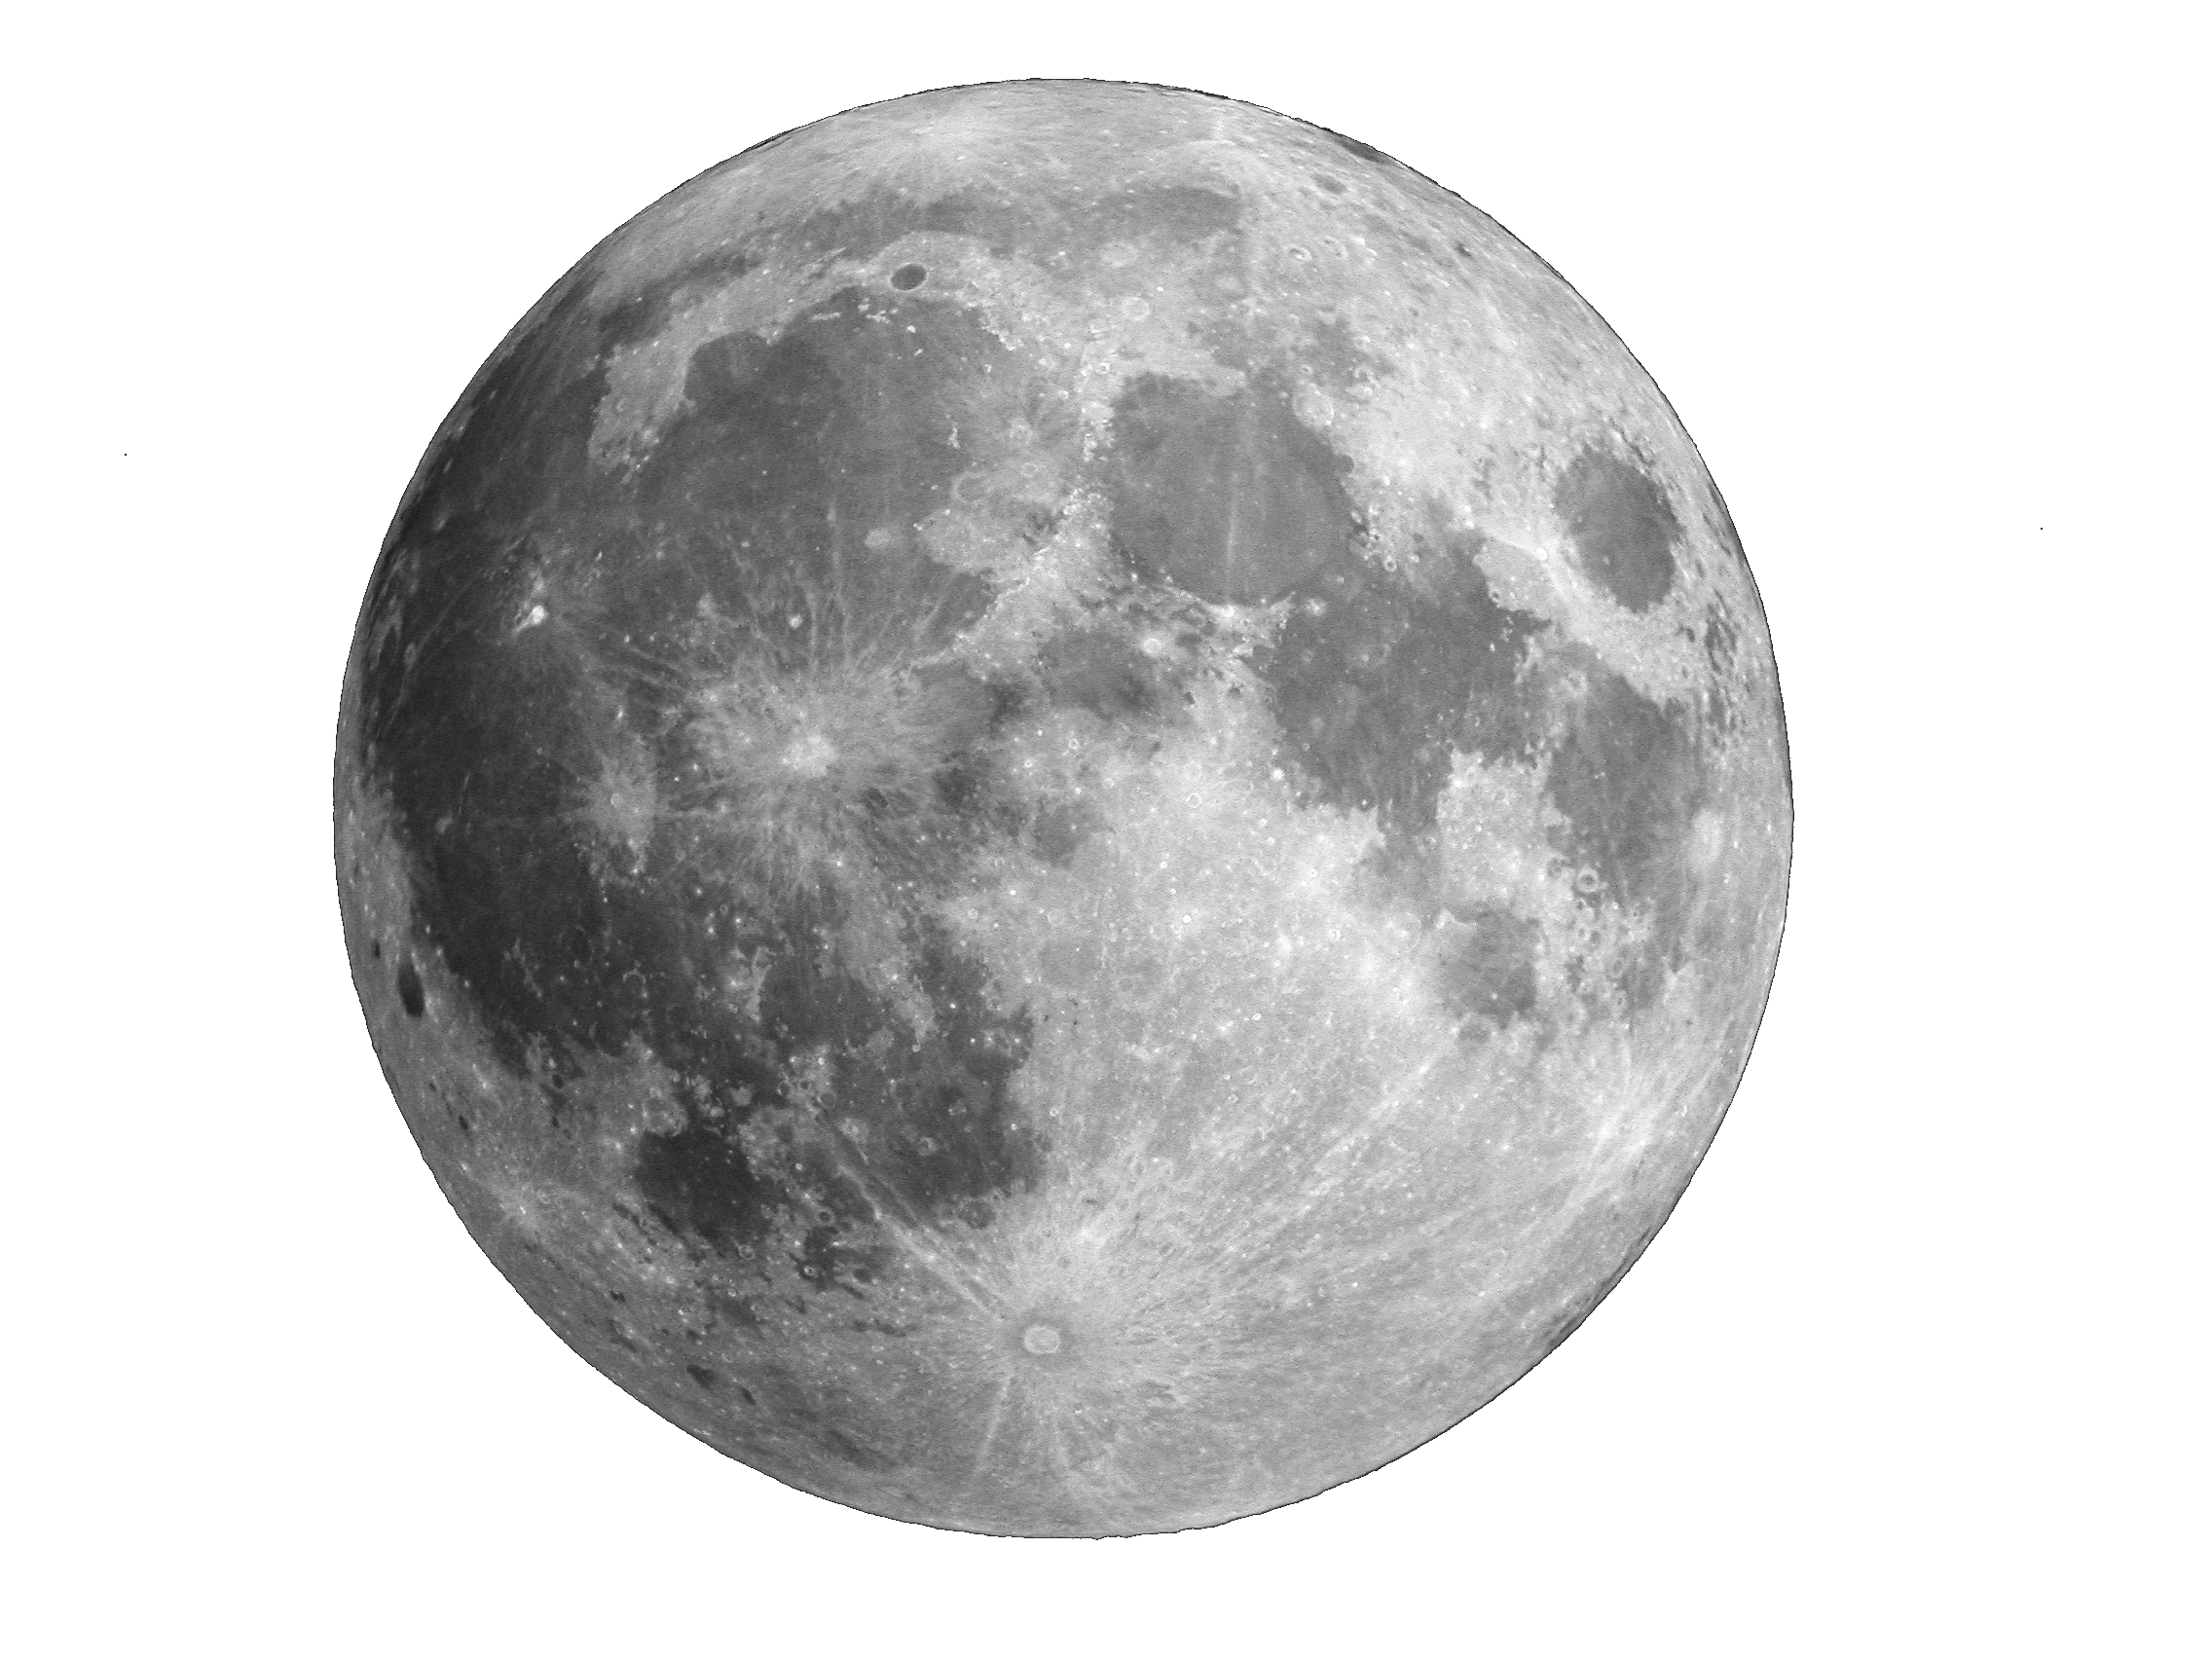 Moon png image. Images free download